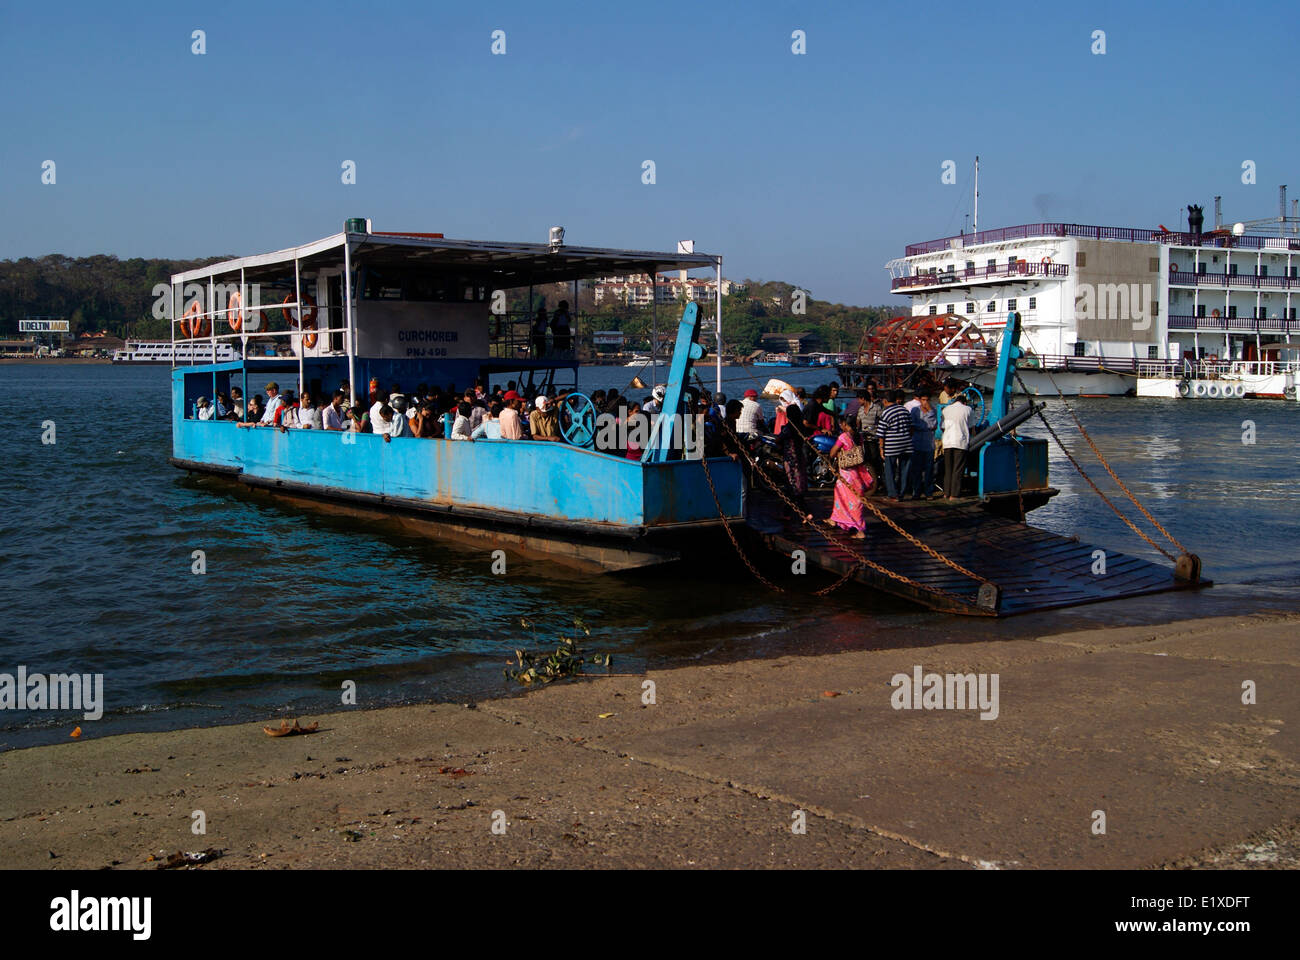 Inland Water Transportation in Goa India Vintage Ferry Boat Service across the river Mandovi - Stock Image